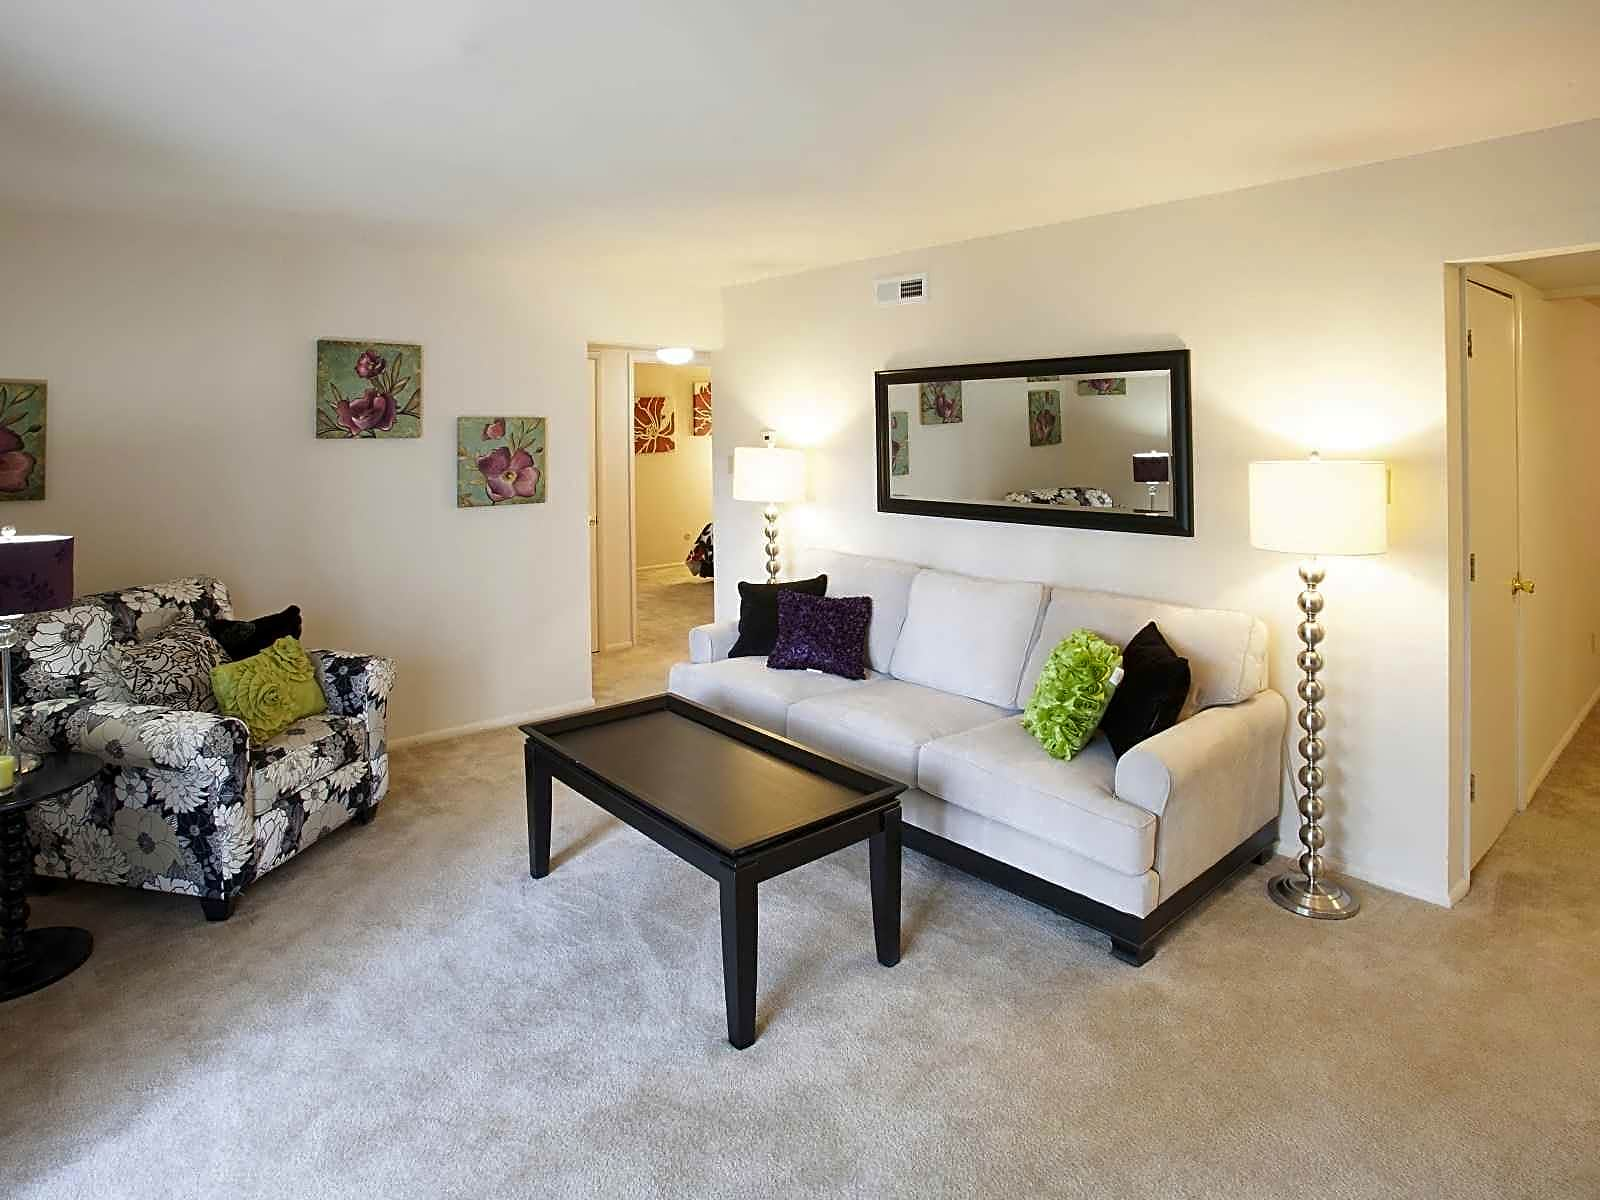 Apartments Near Logan Cherry Creek for Logan University Students in Chesterfield, MO